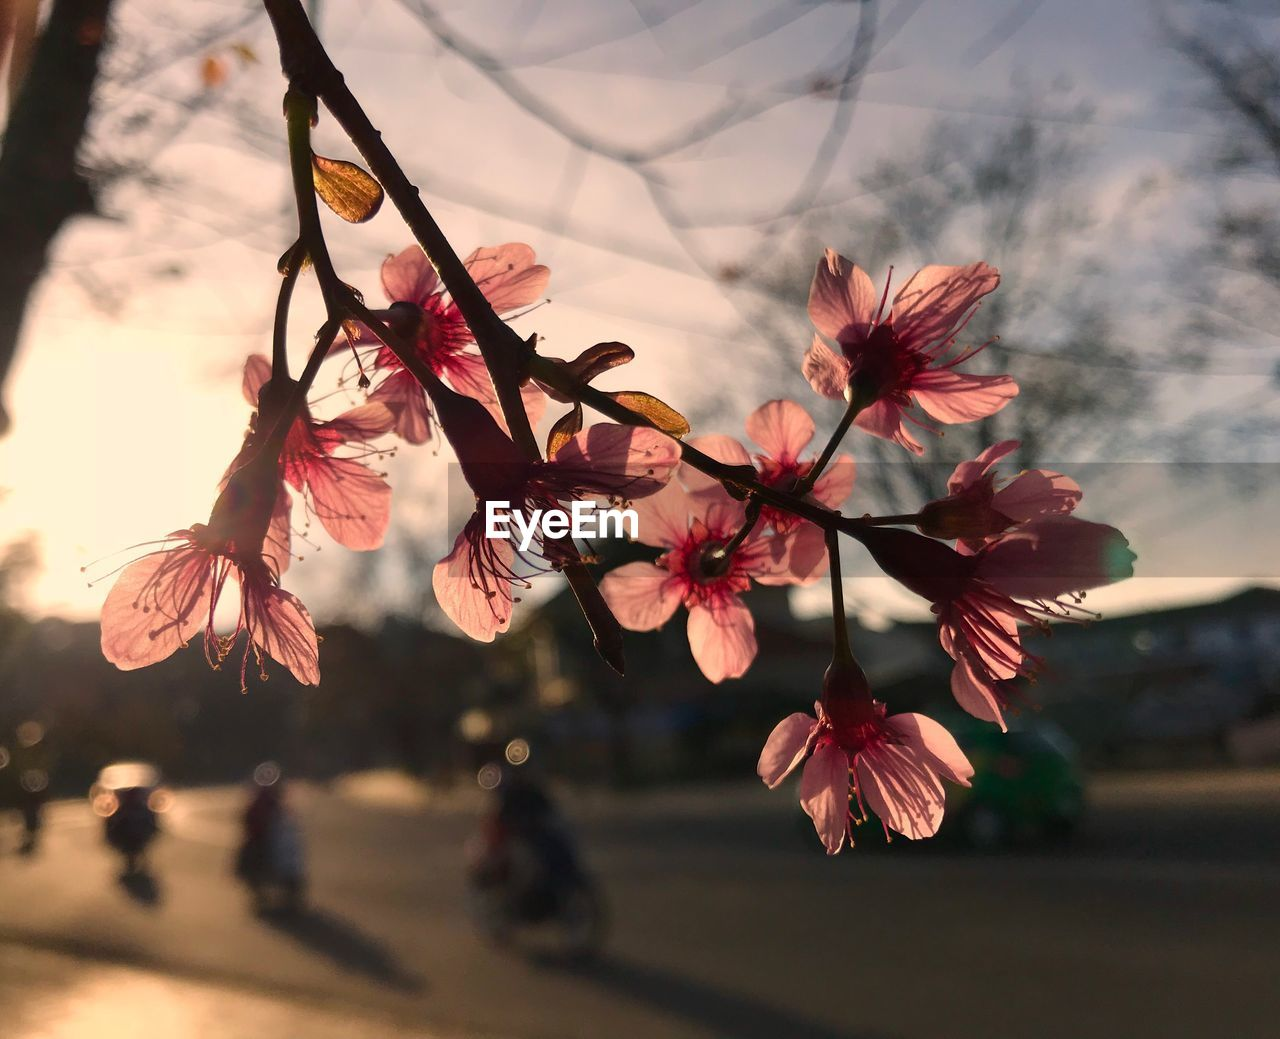 flower, growth, nature, close-up, focus on foreground, beauty in nature, fragility, outdoors, tree, no people, day, freshness, flower head, sky